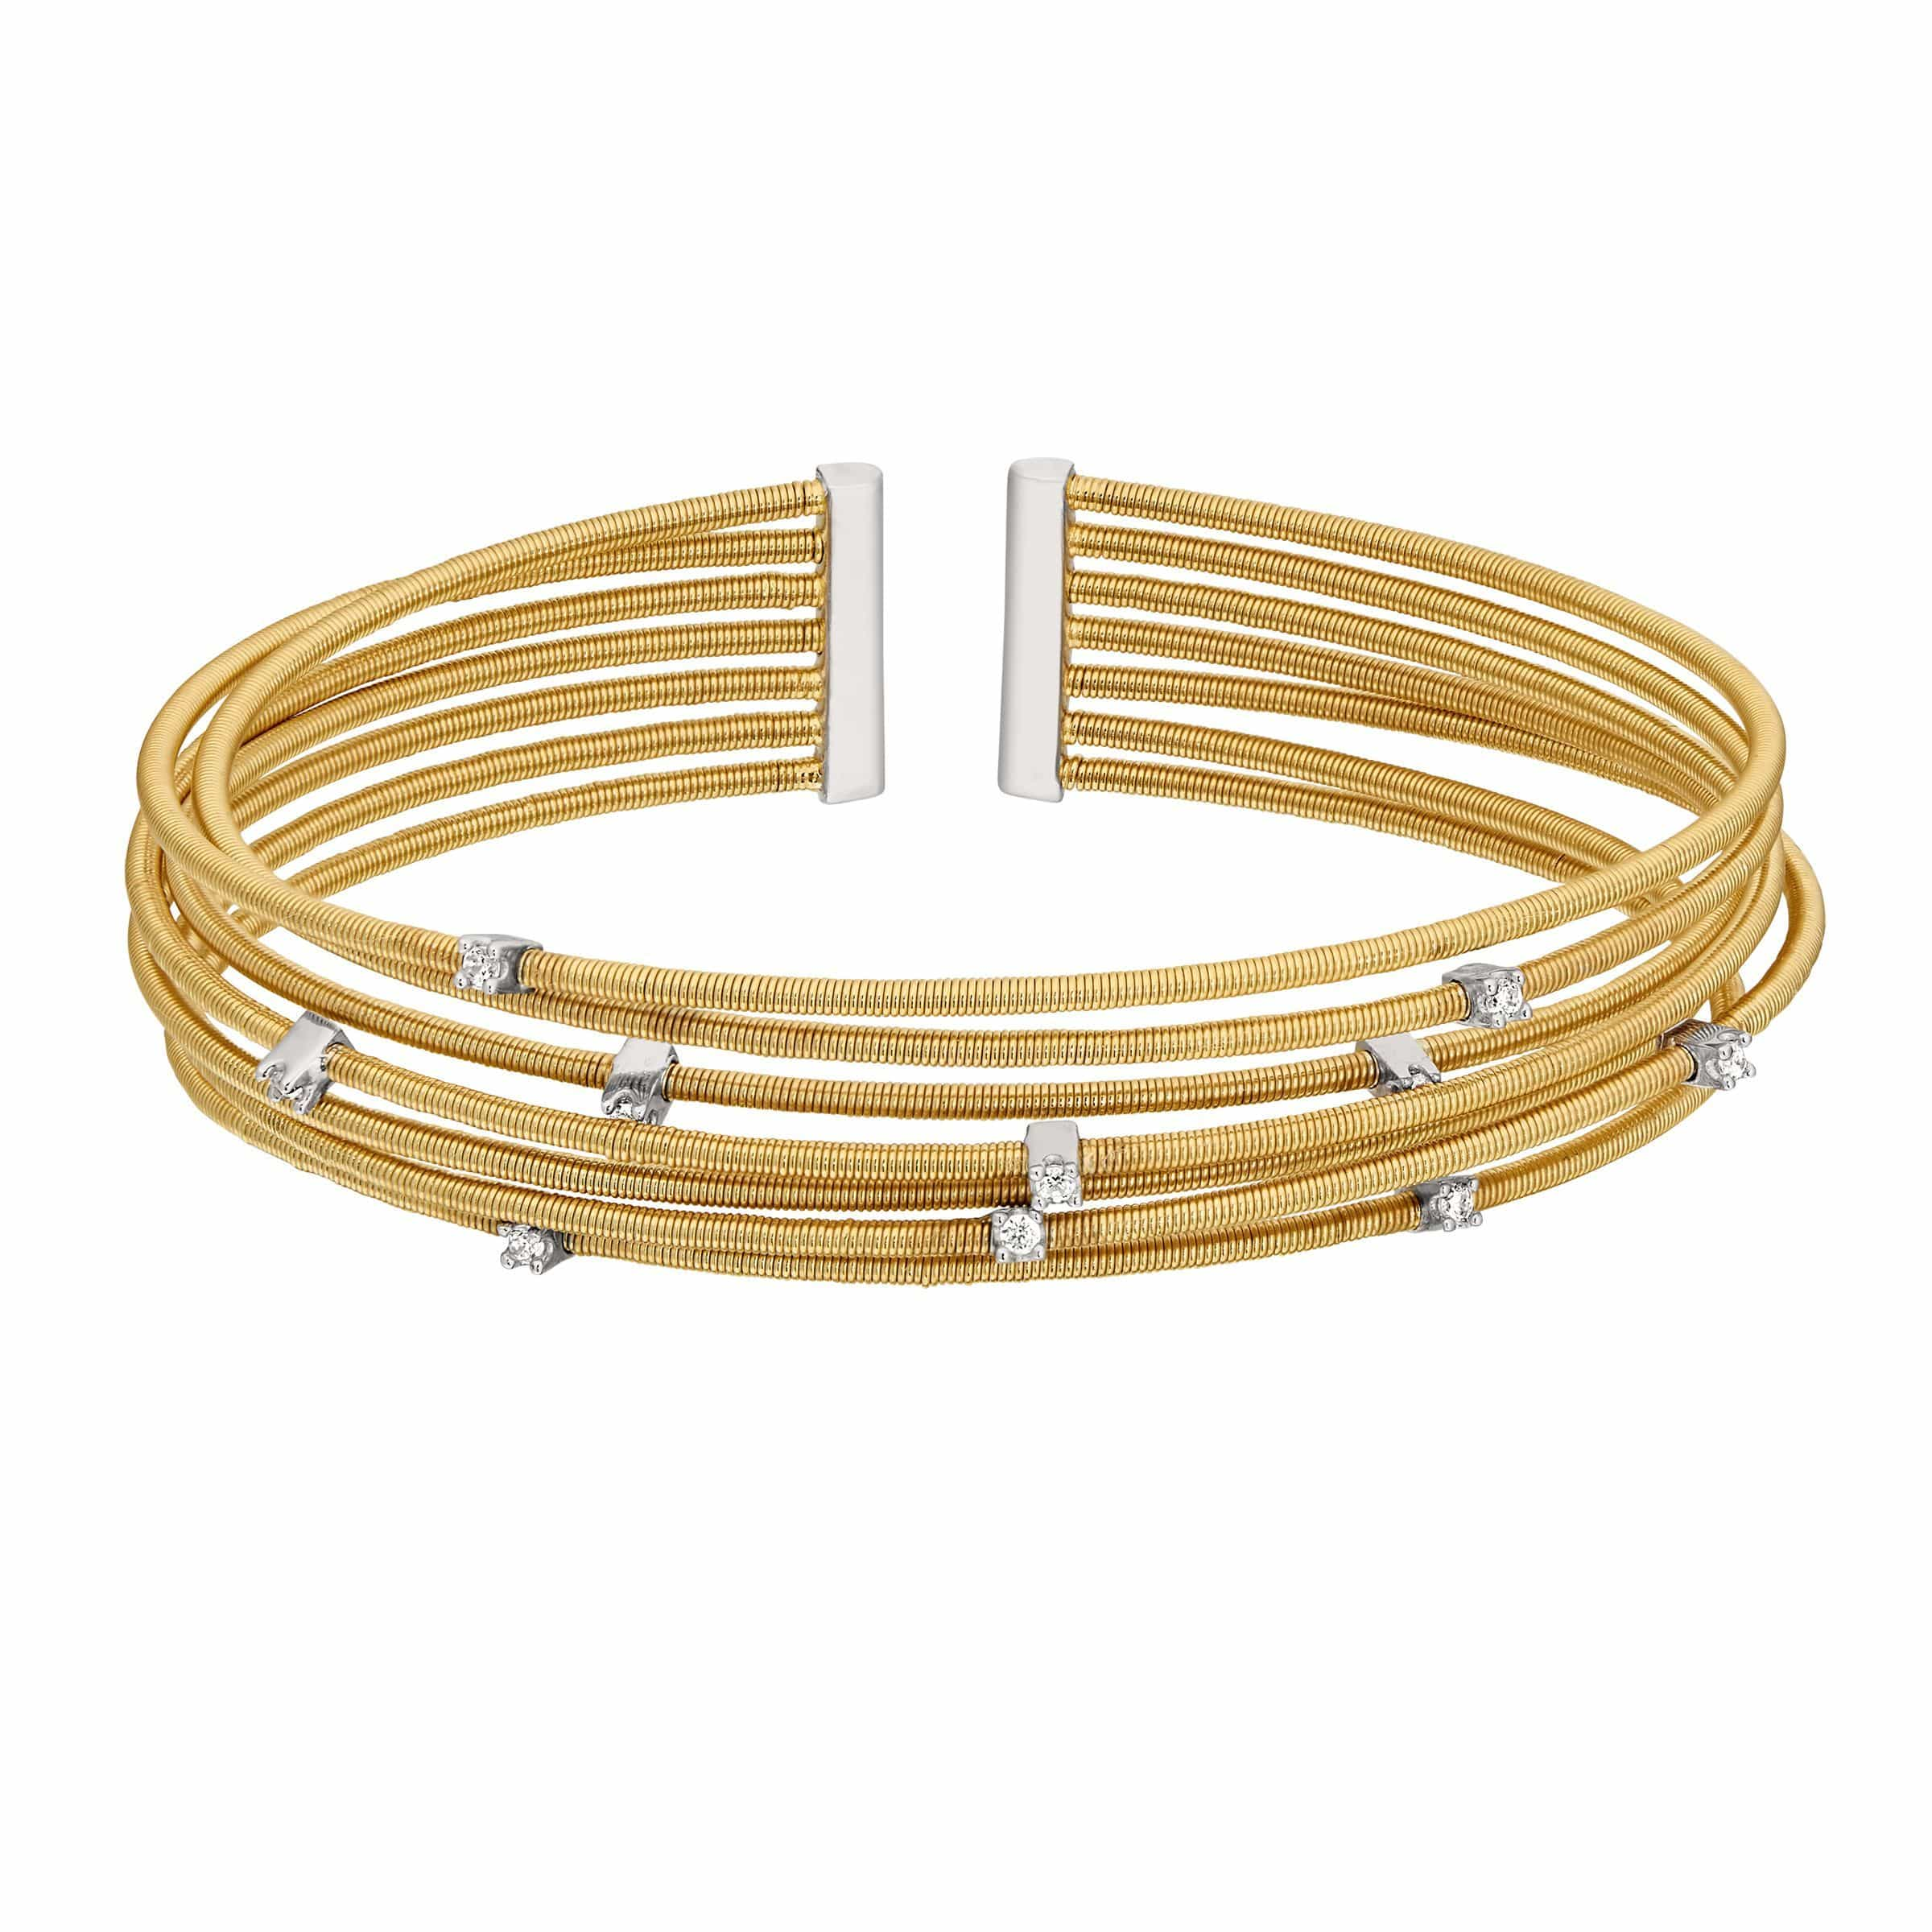 Gold Finish Sterling Silver Multi Cable Cuff Bracelet - LL7017B-G/RH-Kelly Waters-Renee Taylor Gallery